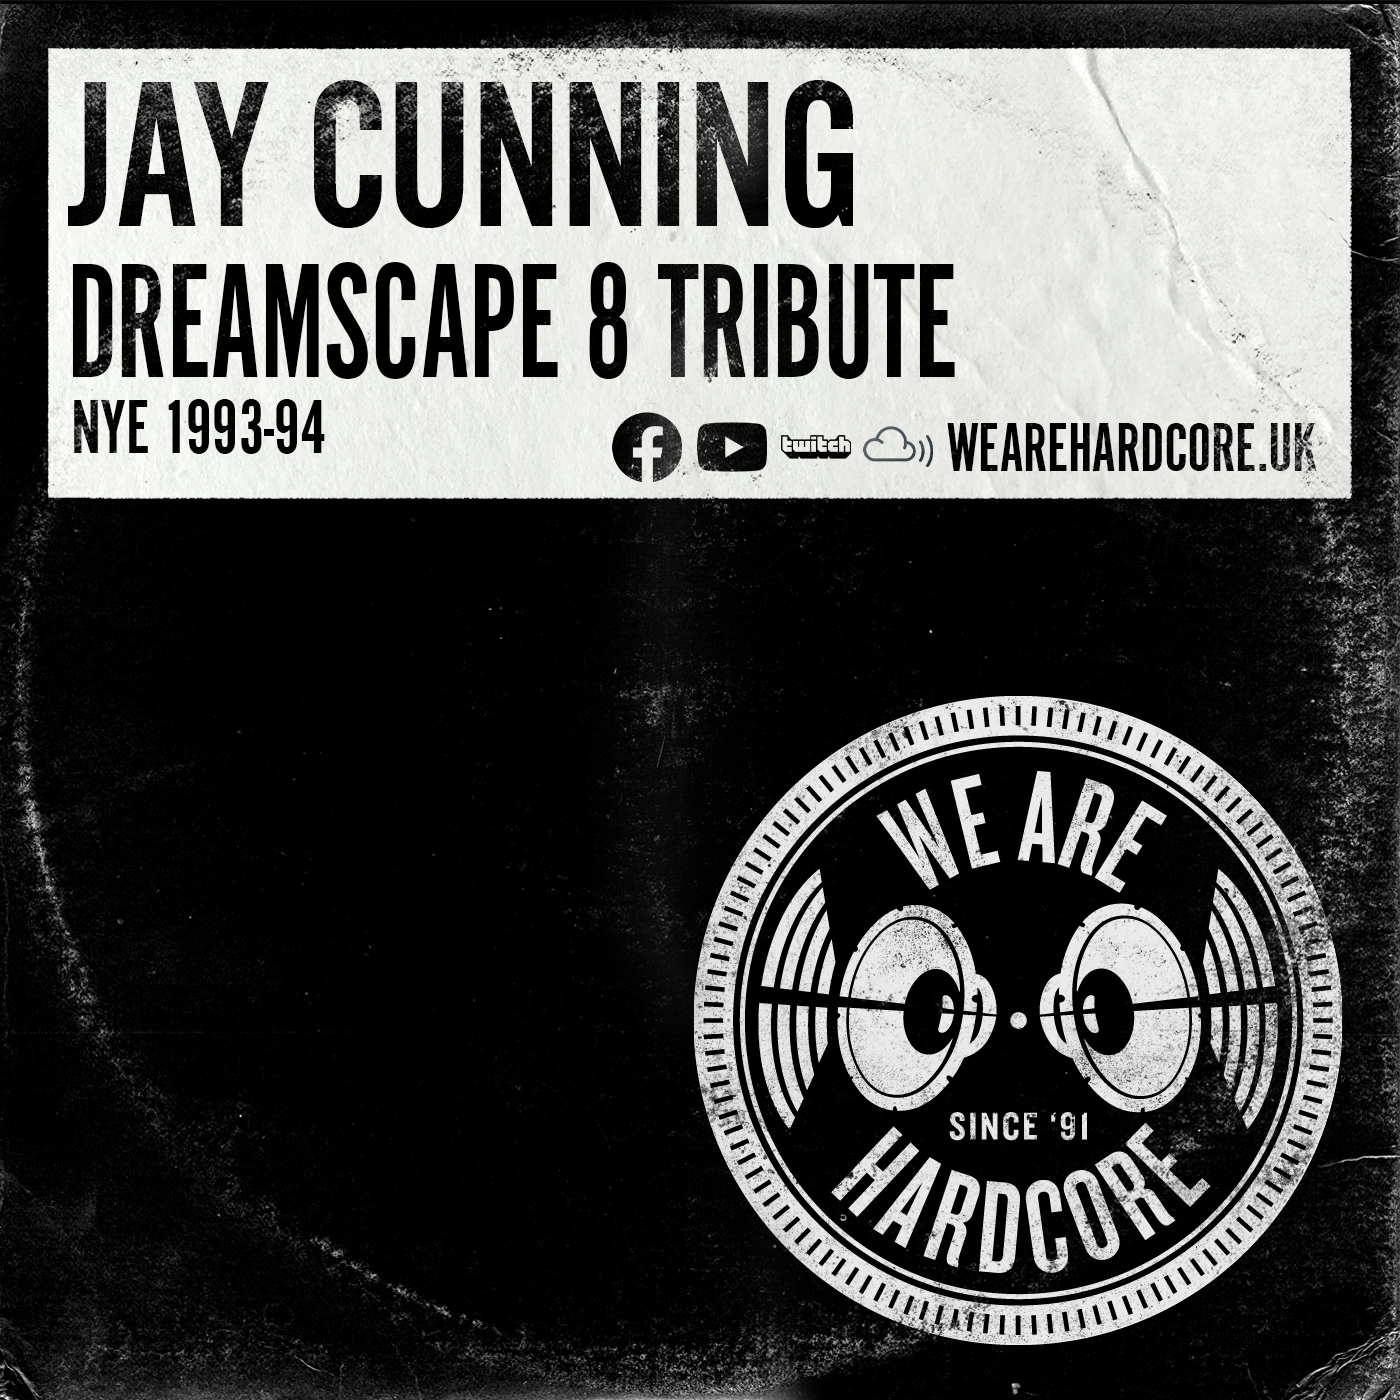 Dreamscape 8 Tribute - NYE 1993 into 1994 - Jay Cunning - WE ARE HARDCORE